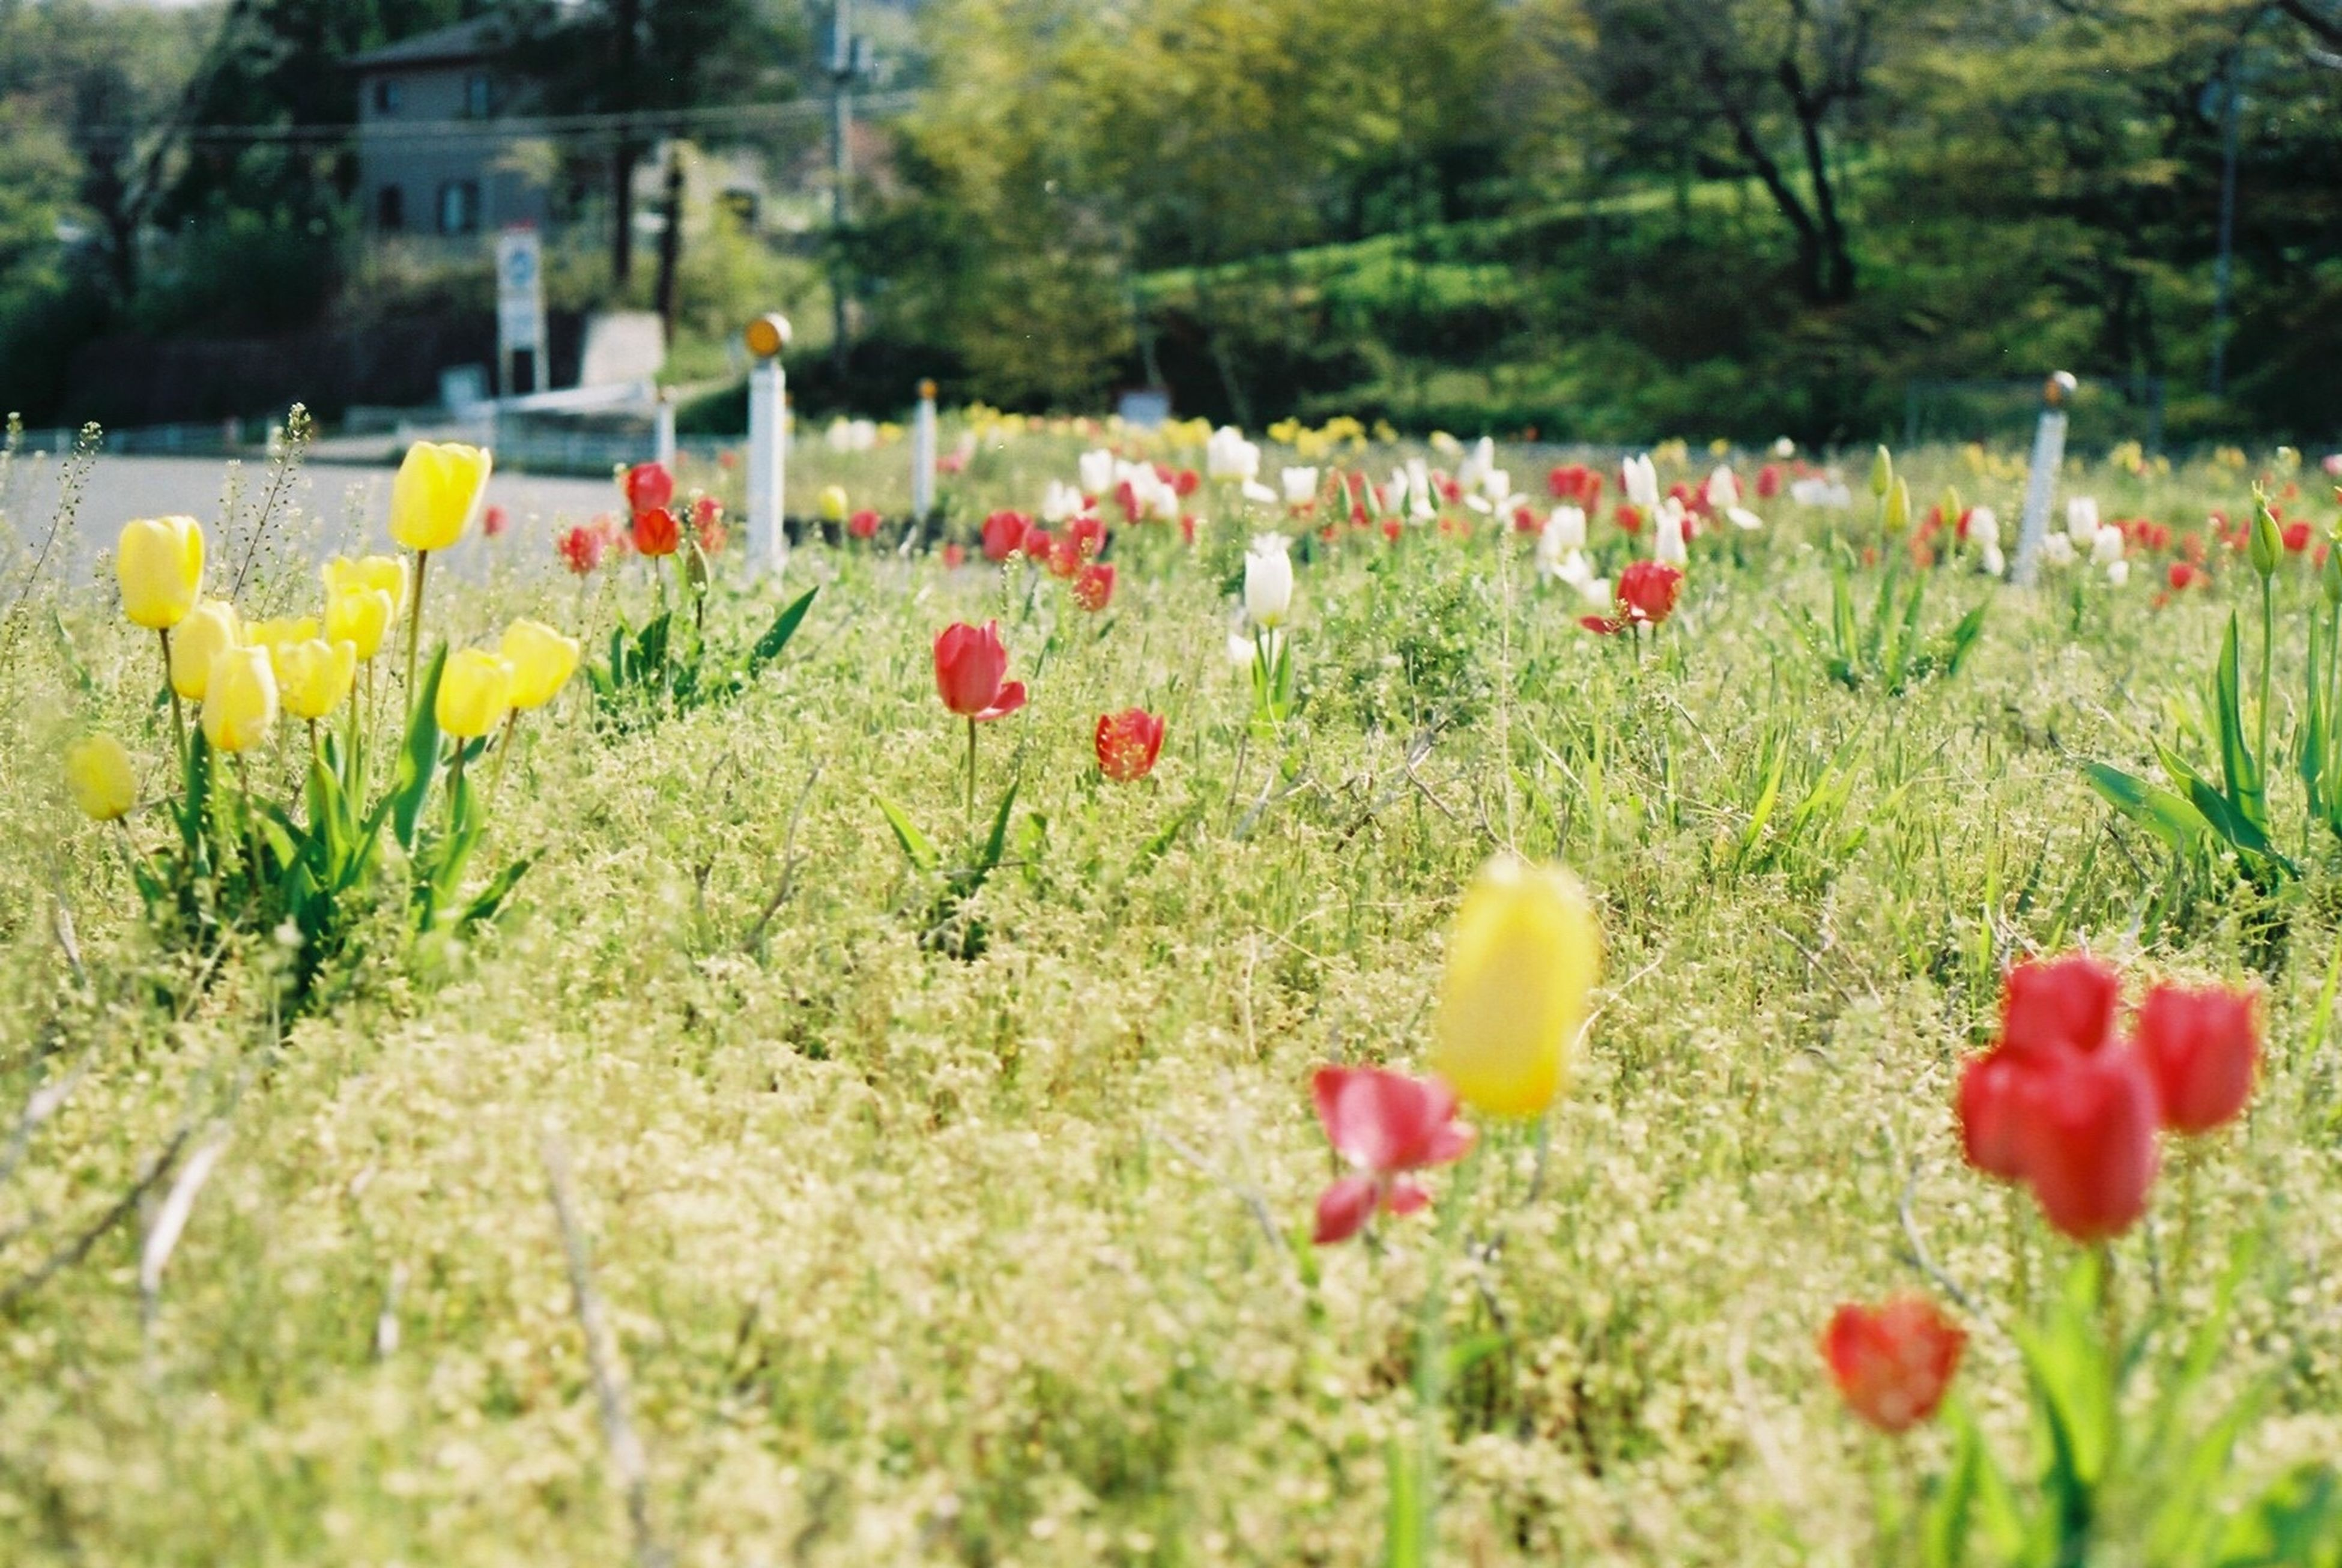 flower, freshness, growth, field, fragility, beauty in nature, petal, tulip, blooming, nature, plant, grass, flower head, stem, in bloom, focus on foreground, landscape, tranquility, flowerbed, multi colored